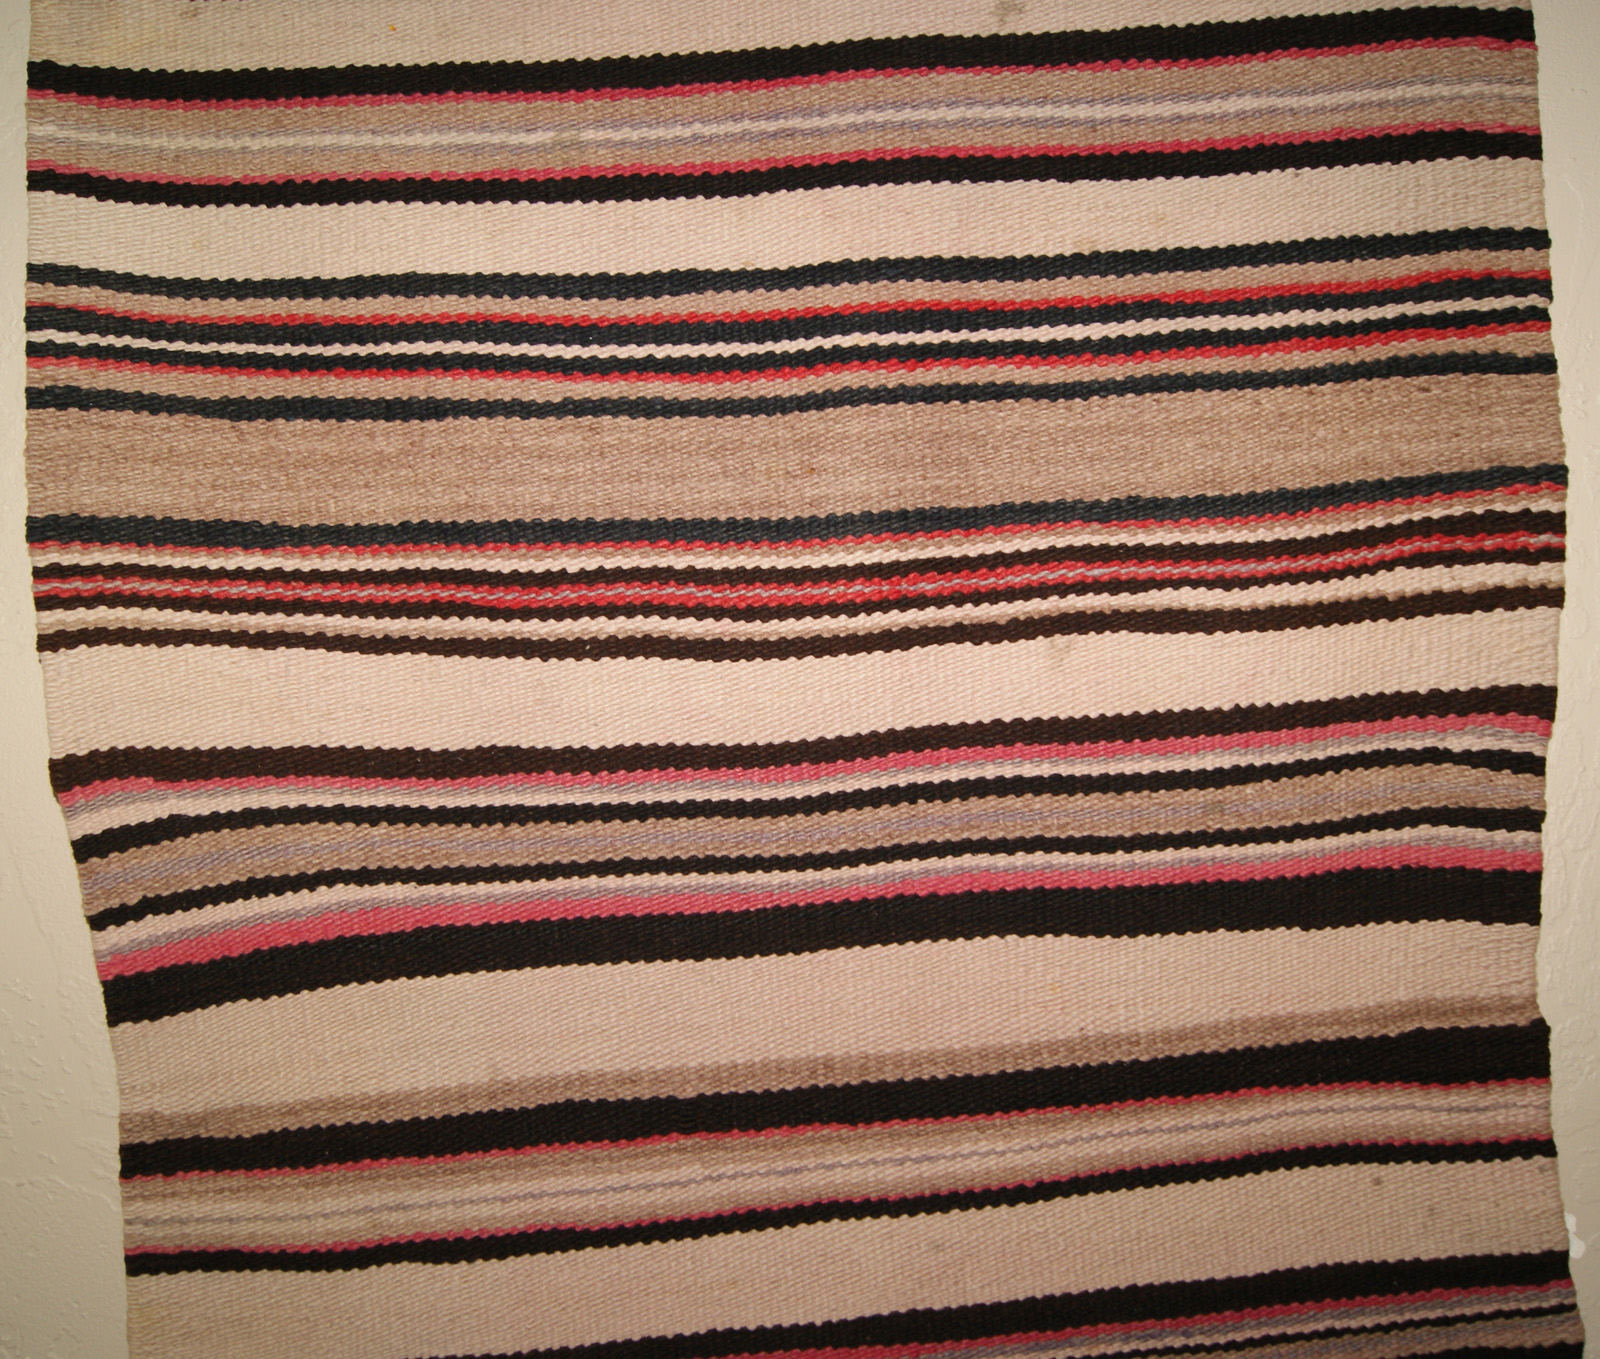 Navajo Double Saddle Blanket D33 Navajo Weaving For Sale